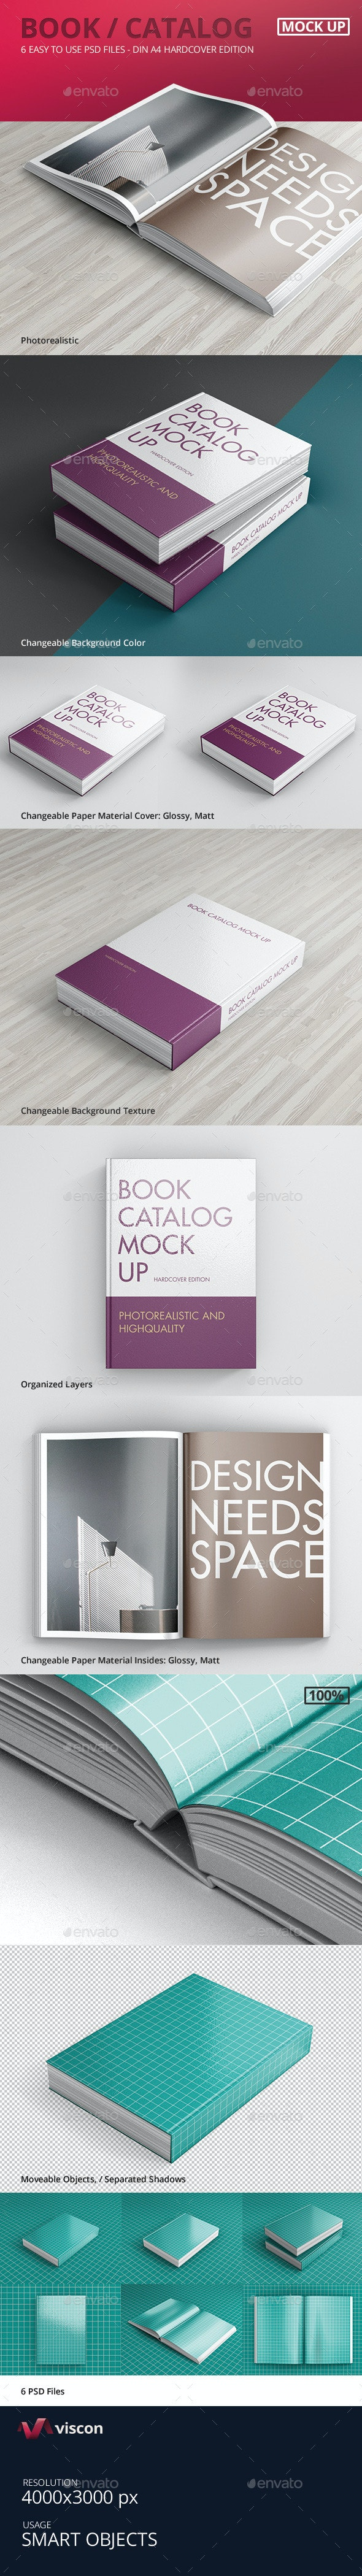 Book / Catalog Mock-Ups Hardcover Edition - Books Print